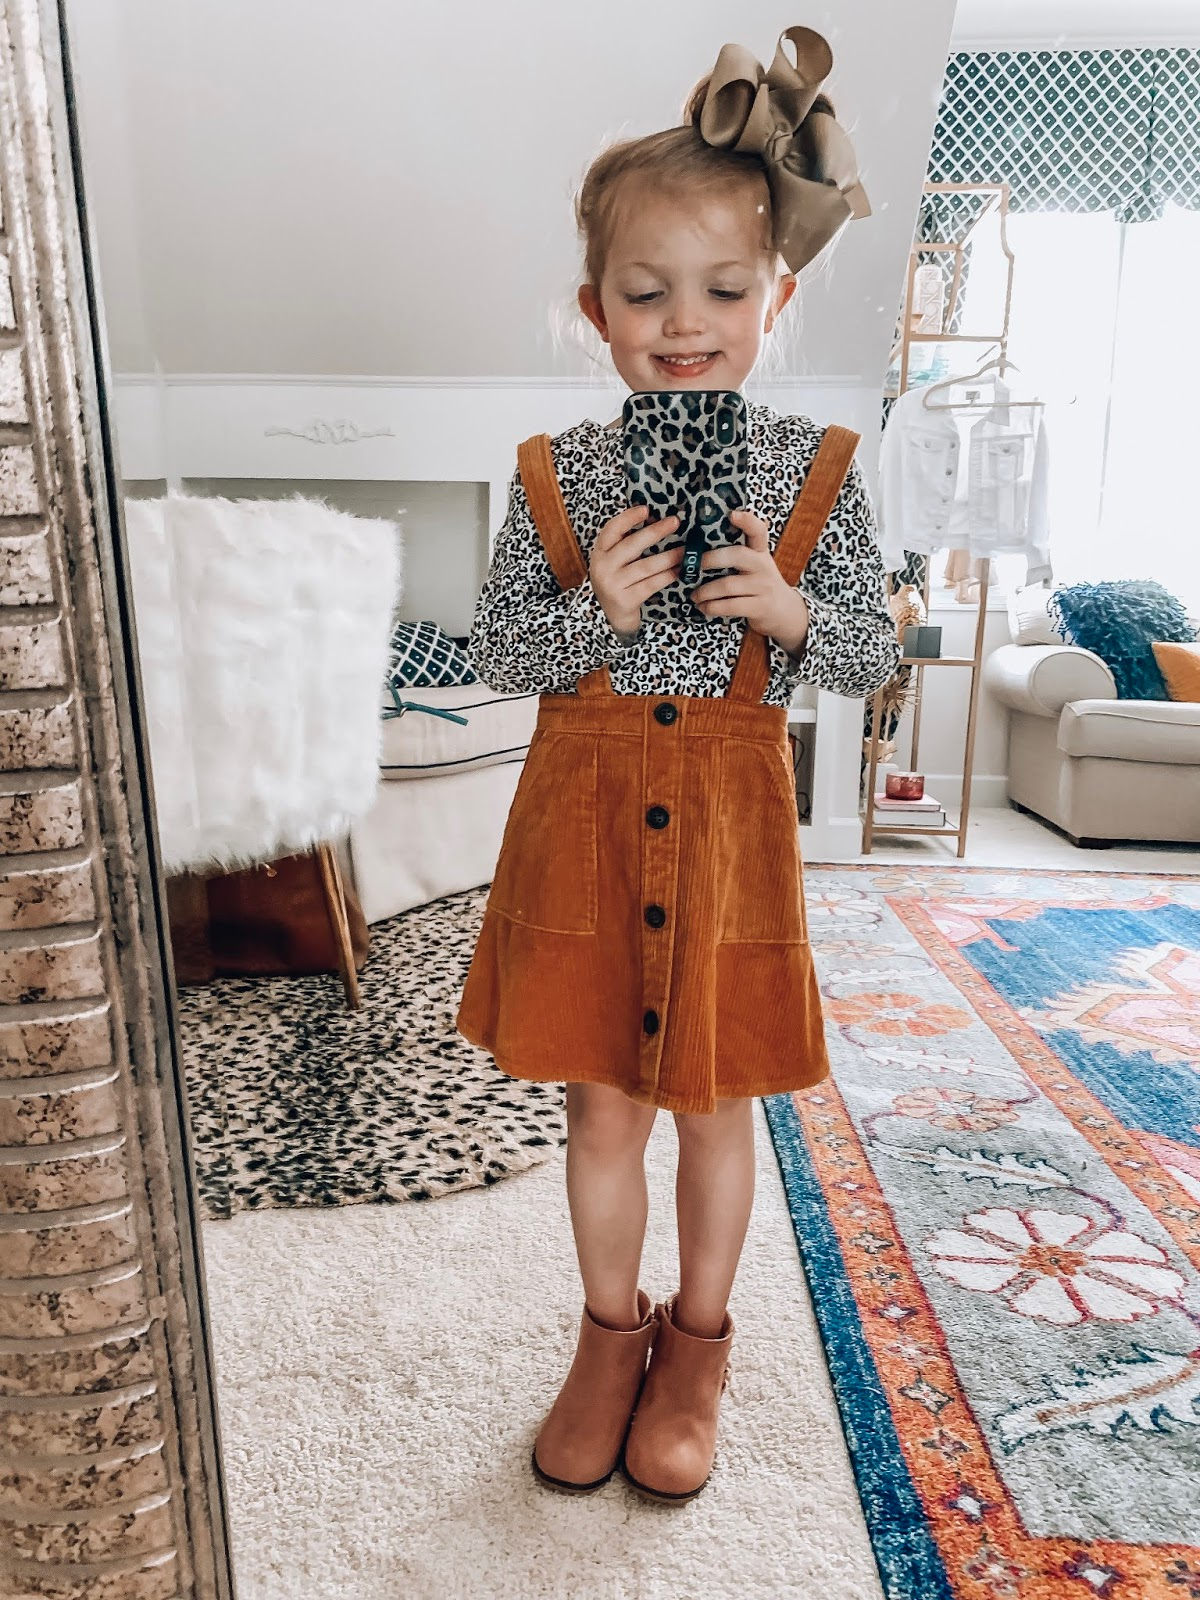 Target Fall 2019 Finds for Kids - Madeline's Picks - Corduroy Skirtall Dress, Leopard Top and Booties - Something Delightful Blog #Kidsfallfashion